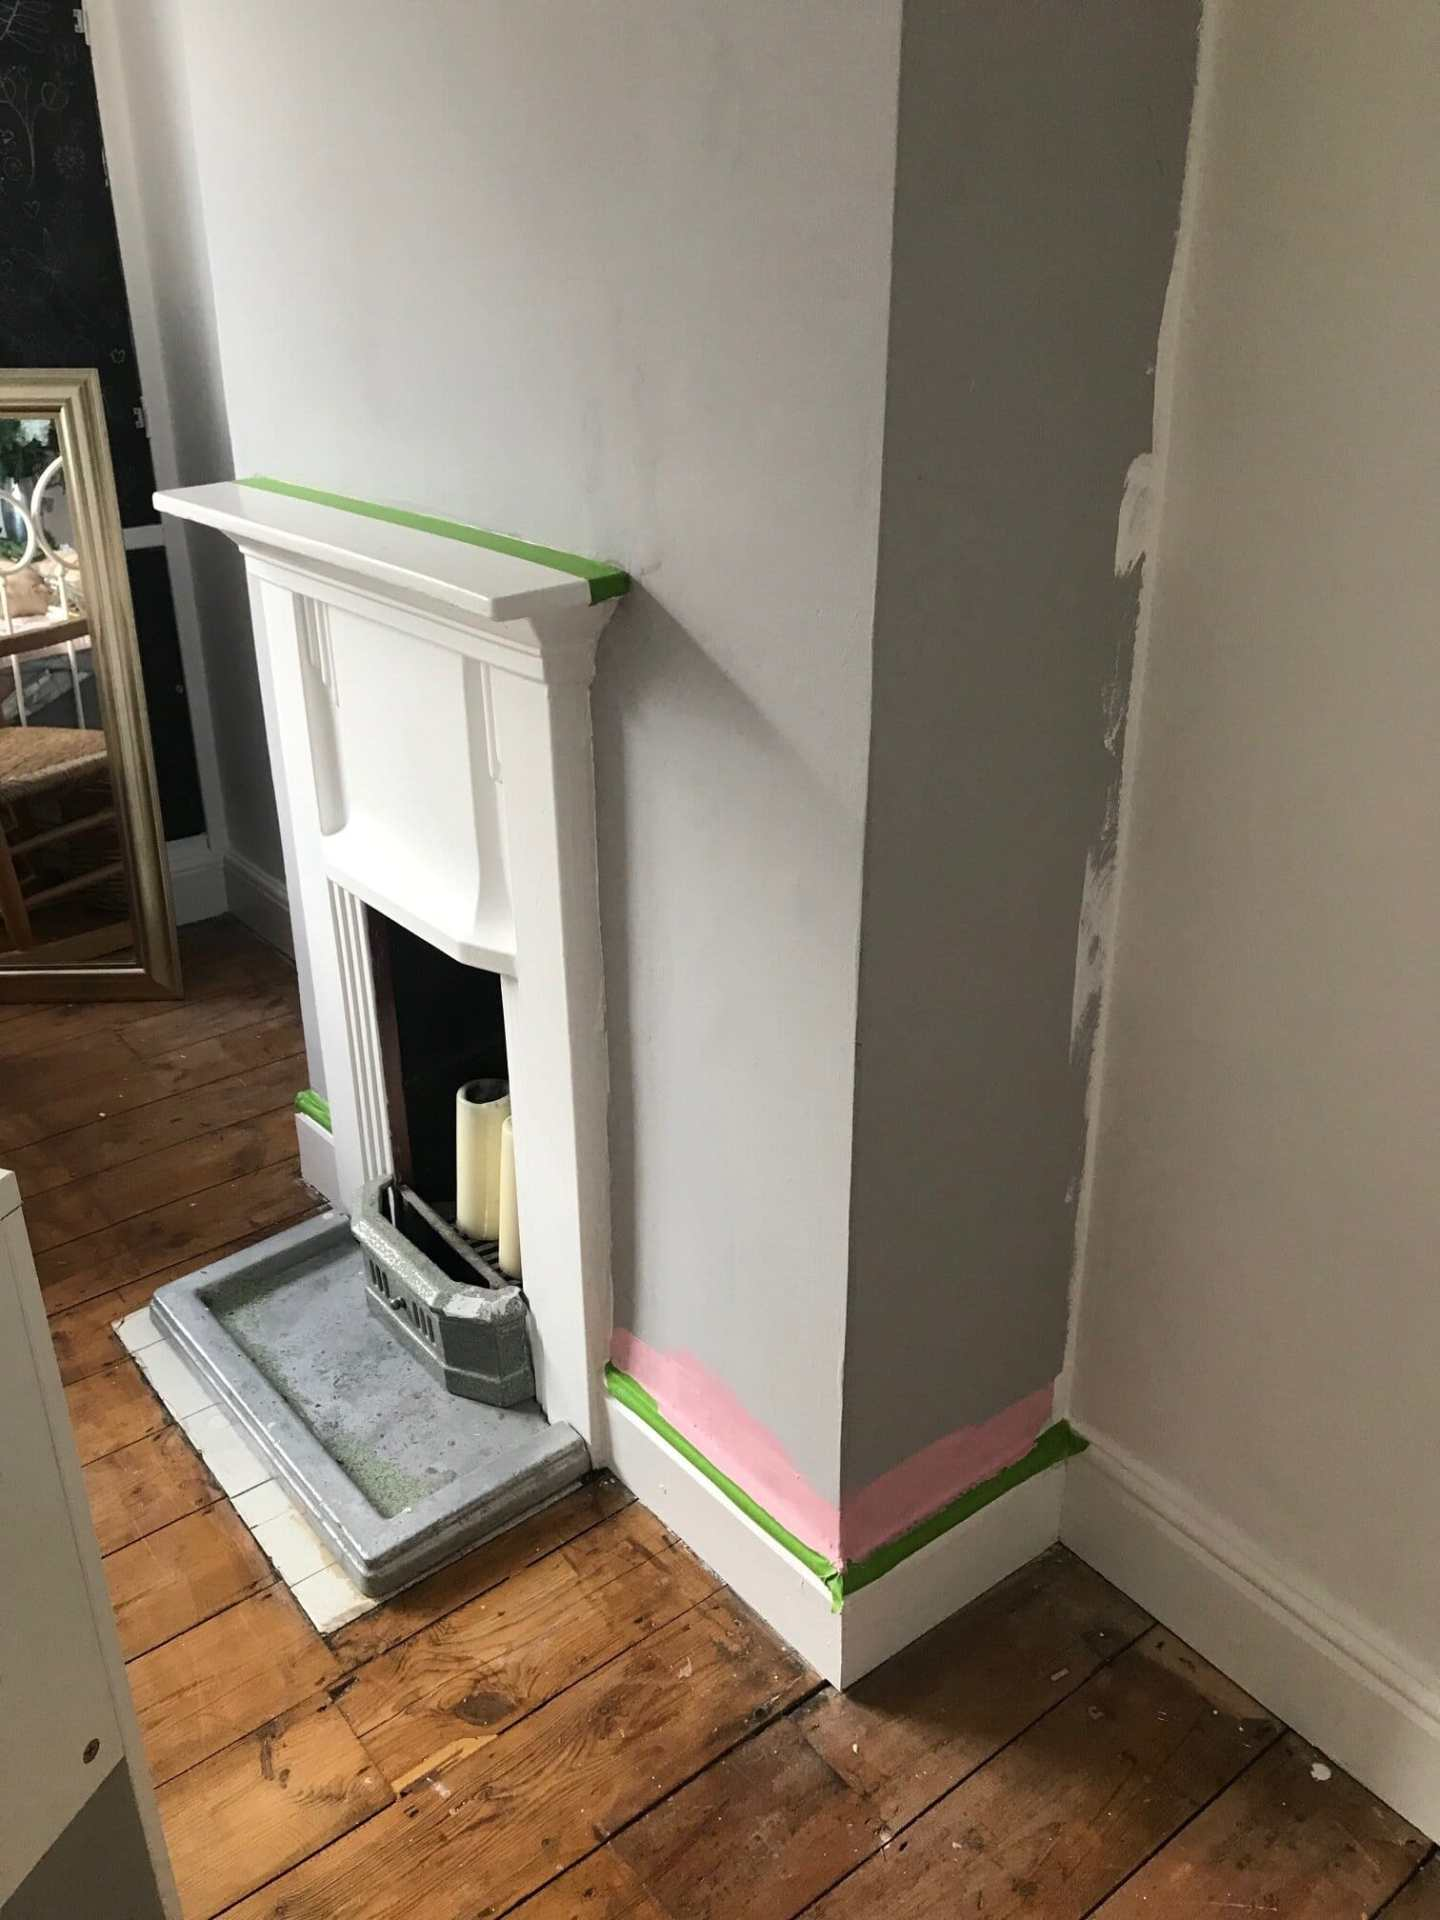 Frog tape around the edges to stop the paint dripping onto the white fireplace and skirting boards